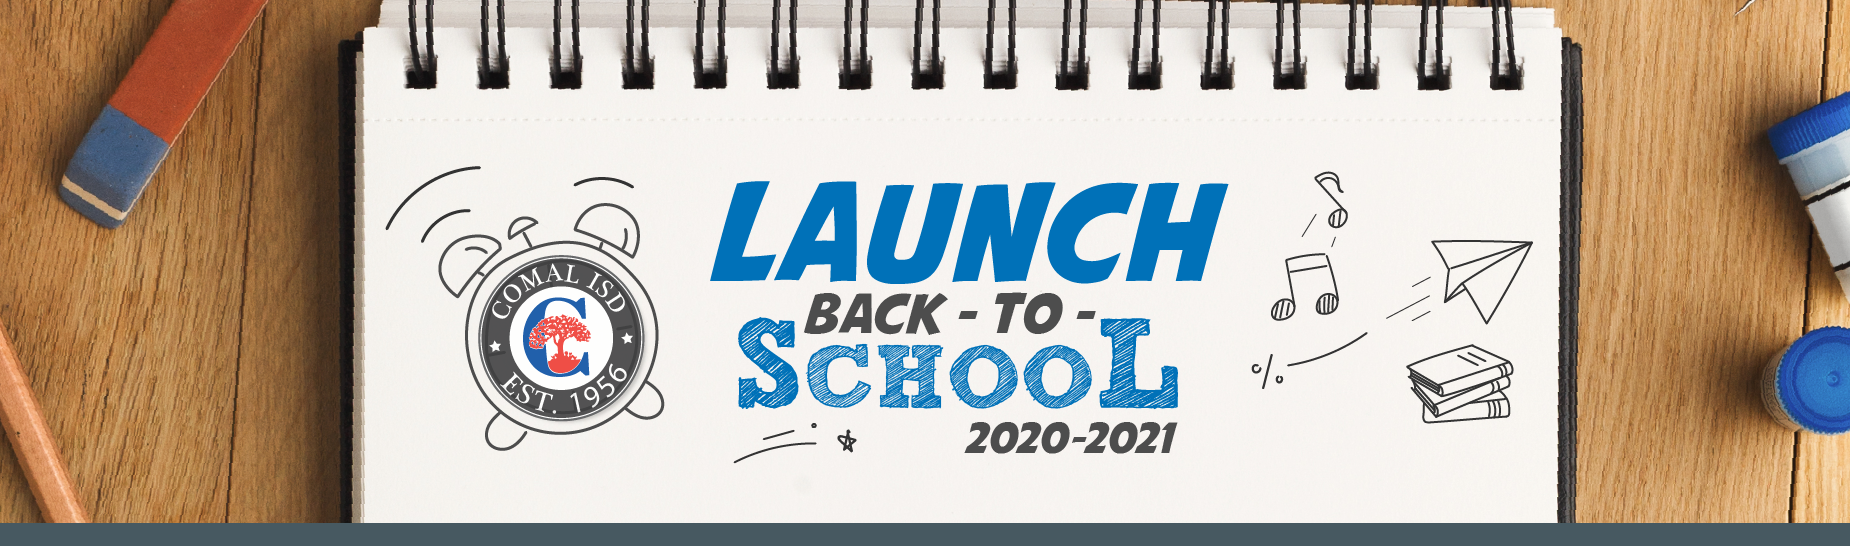 Launch Back to School Banner